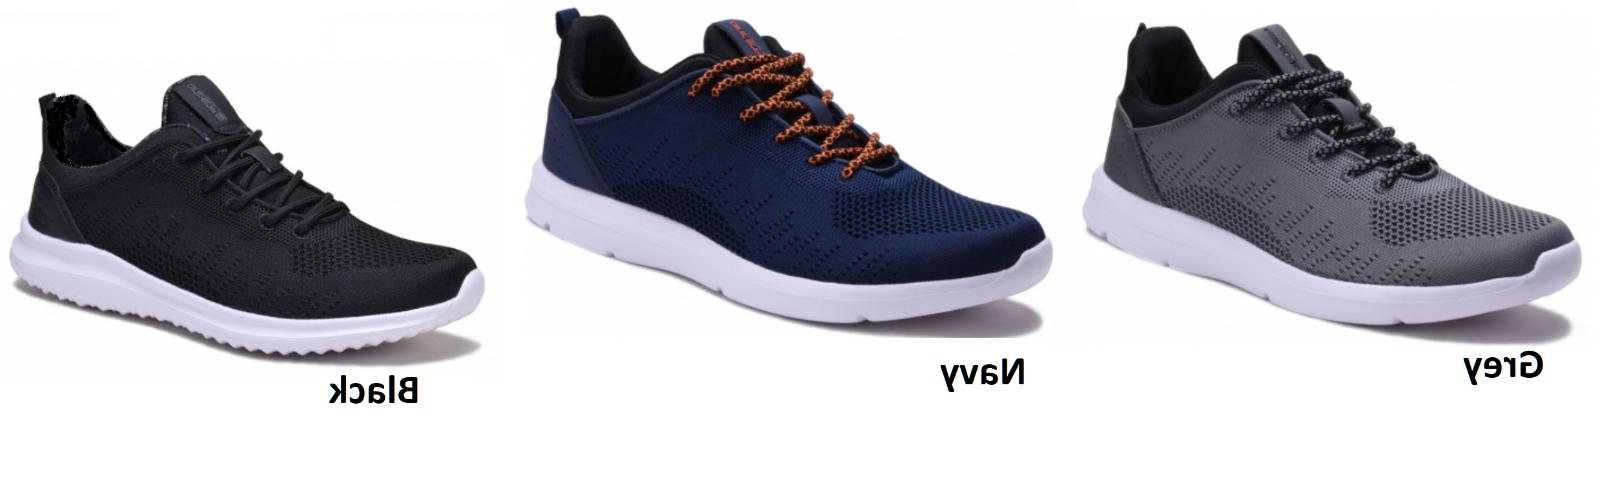 Shoes Weight Training Gym